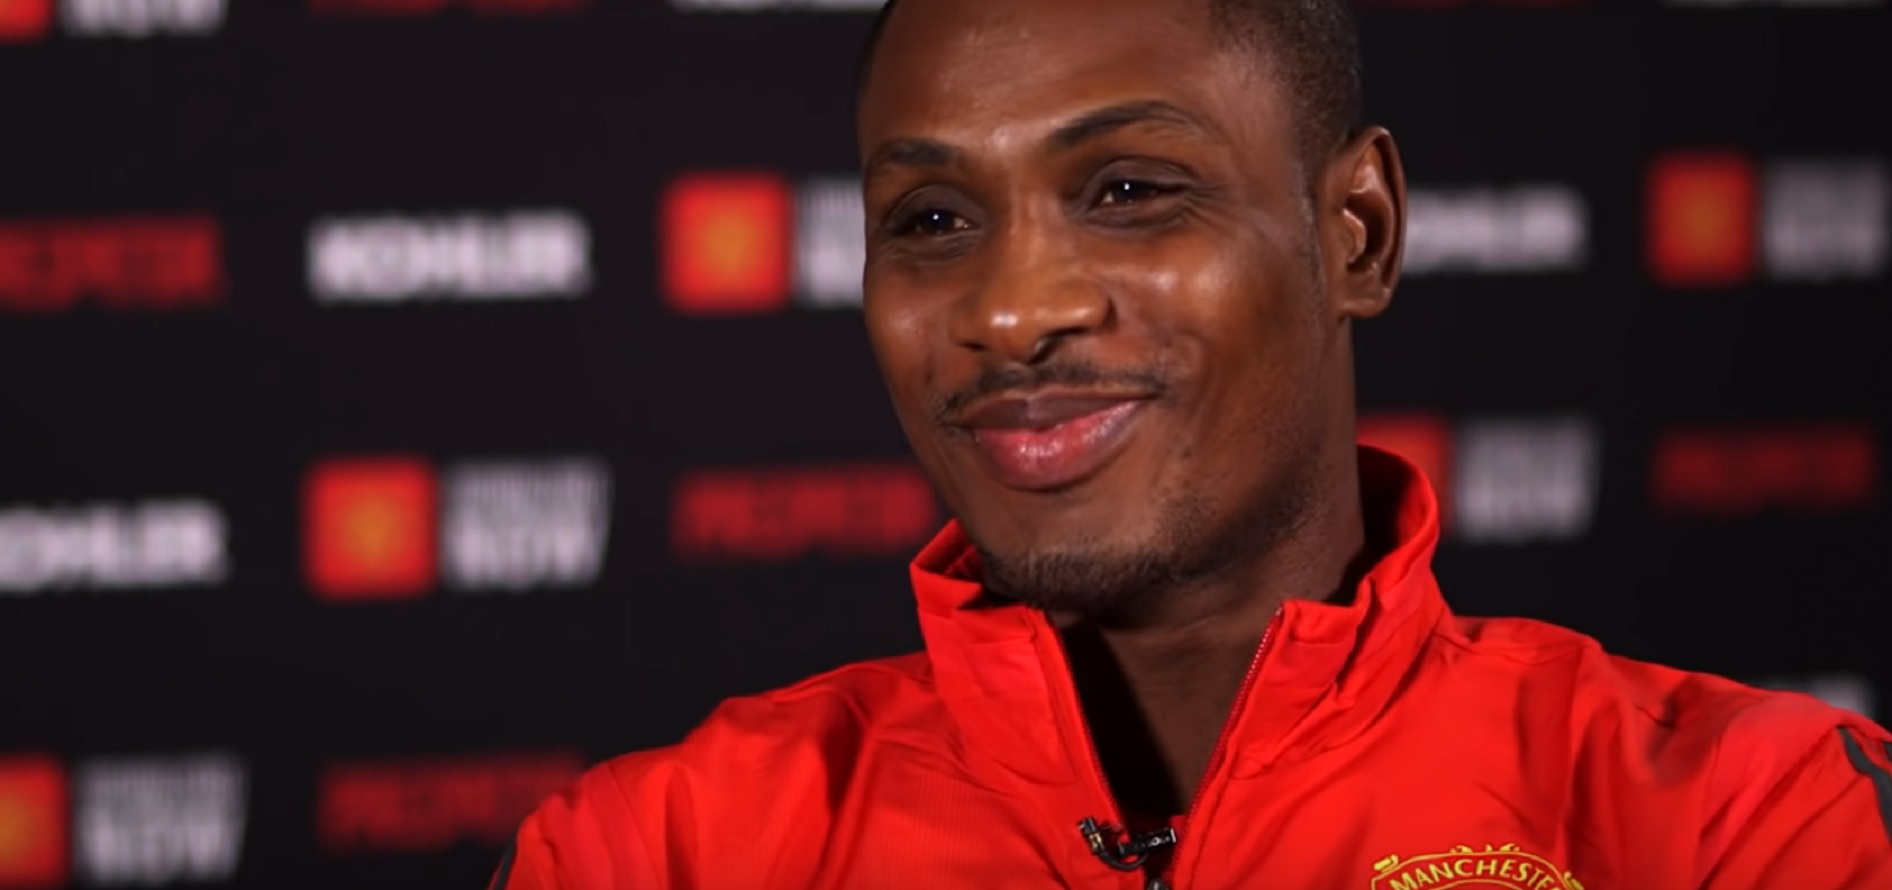 Ighalo plays against Chelsea, makes historical past; Sharia Council dares Boko Haram - 5 Things that Should Matter Today » YNaija